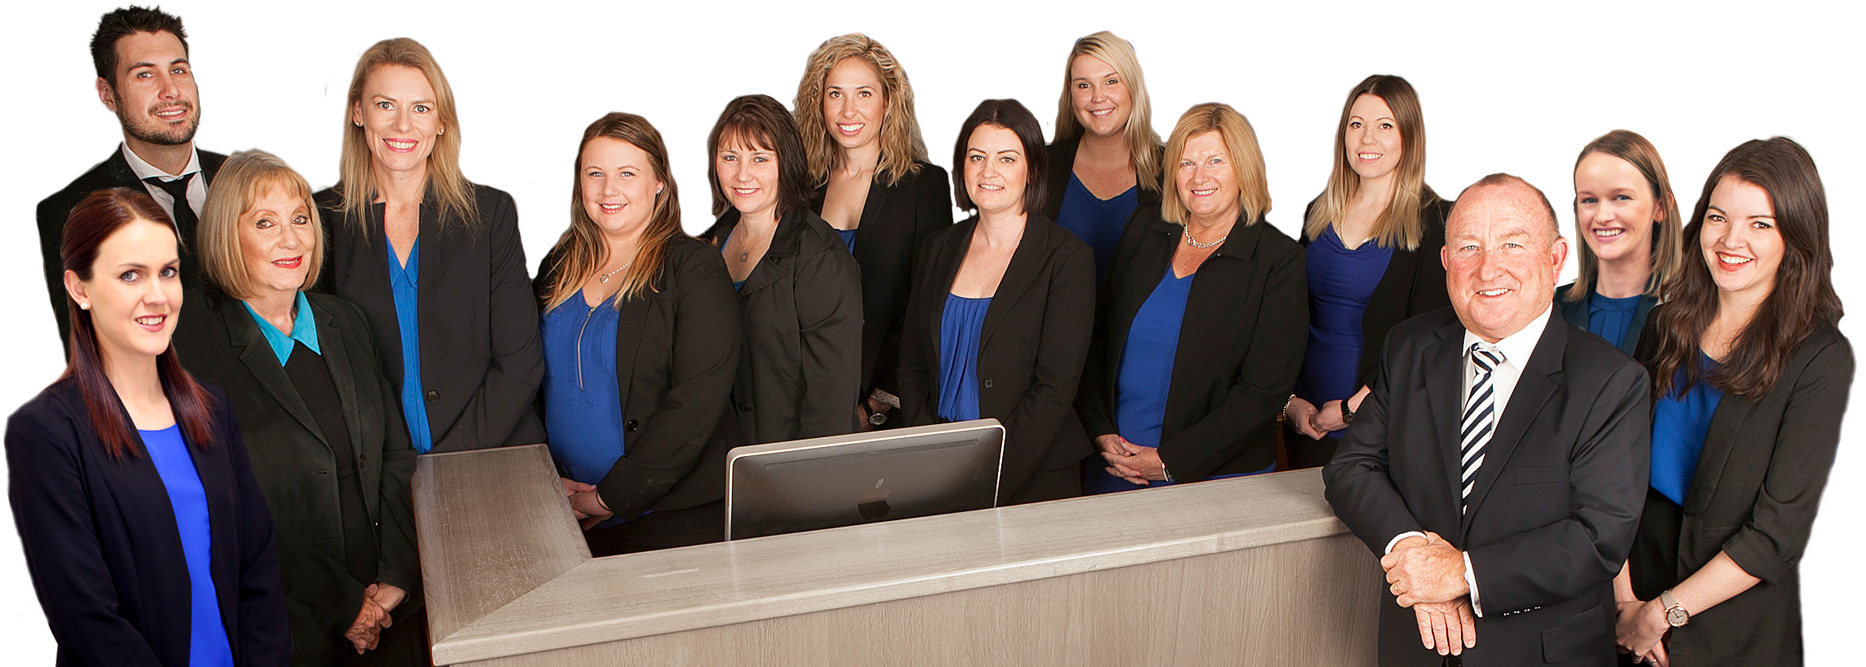 The team at Conveyancing Matters